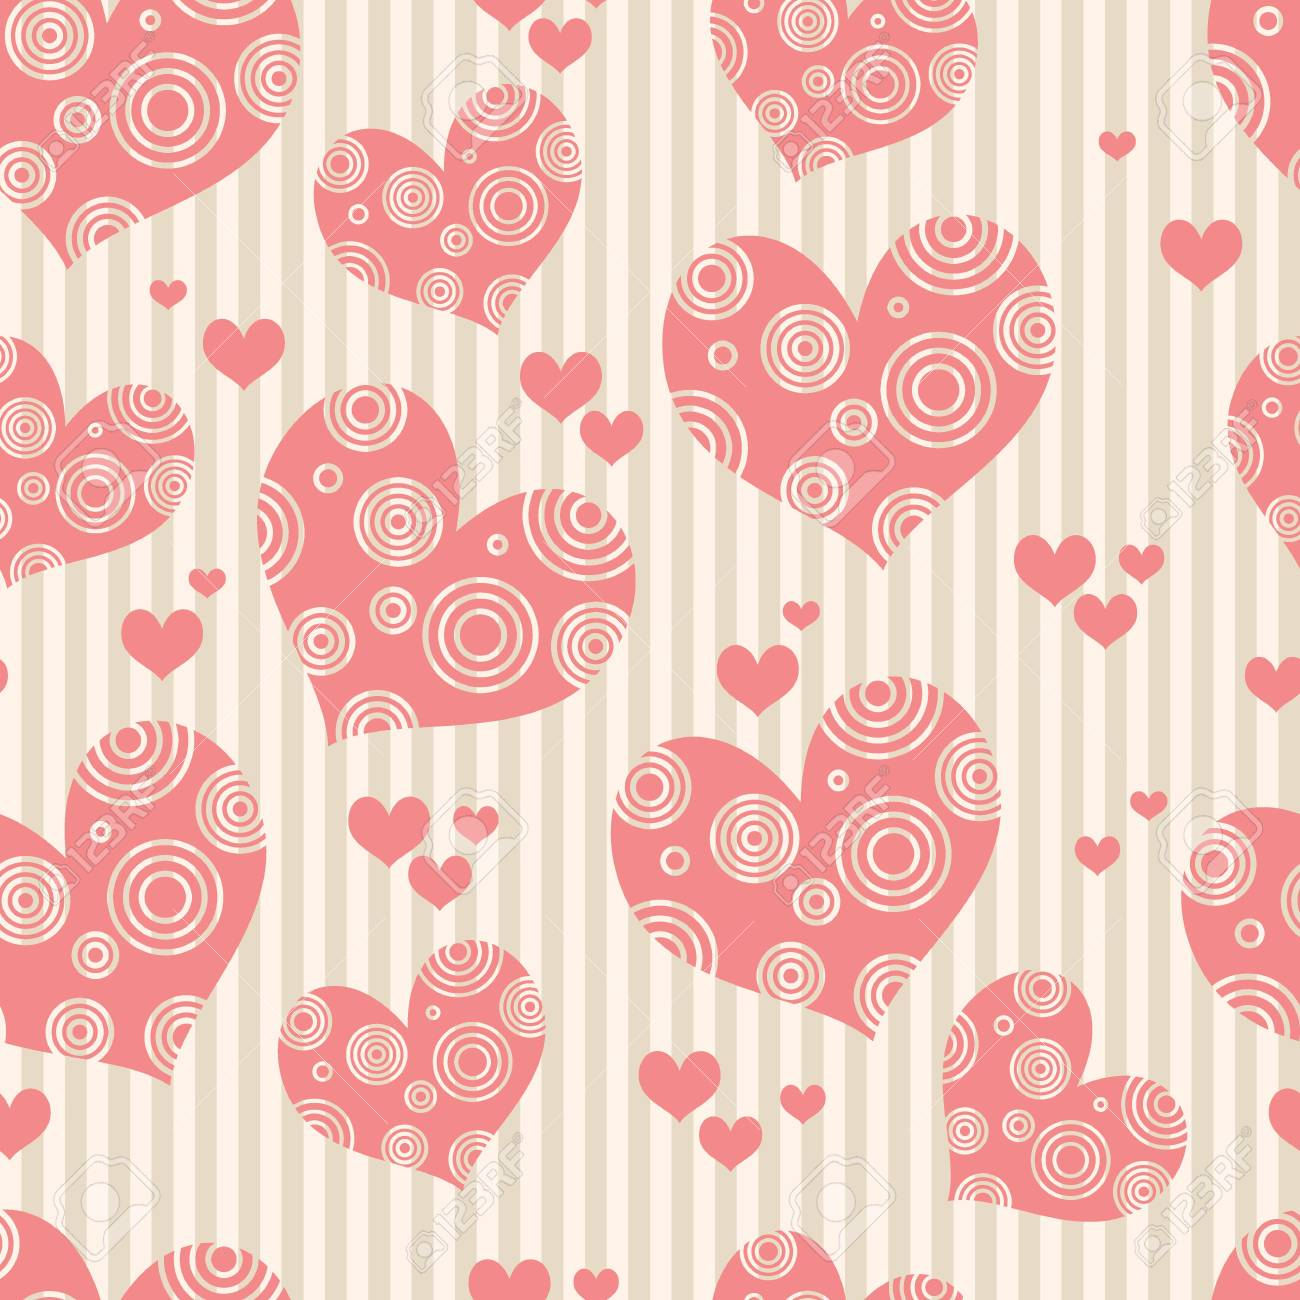 Seamless Pink Background With Hearts Wallpapers Valentines Day Wedding Vector Illustration